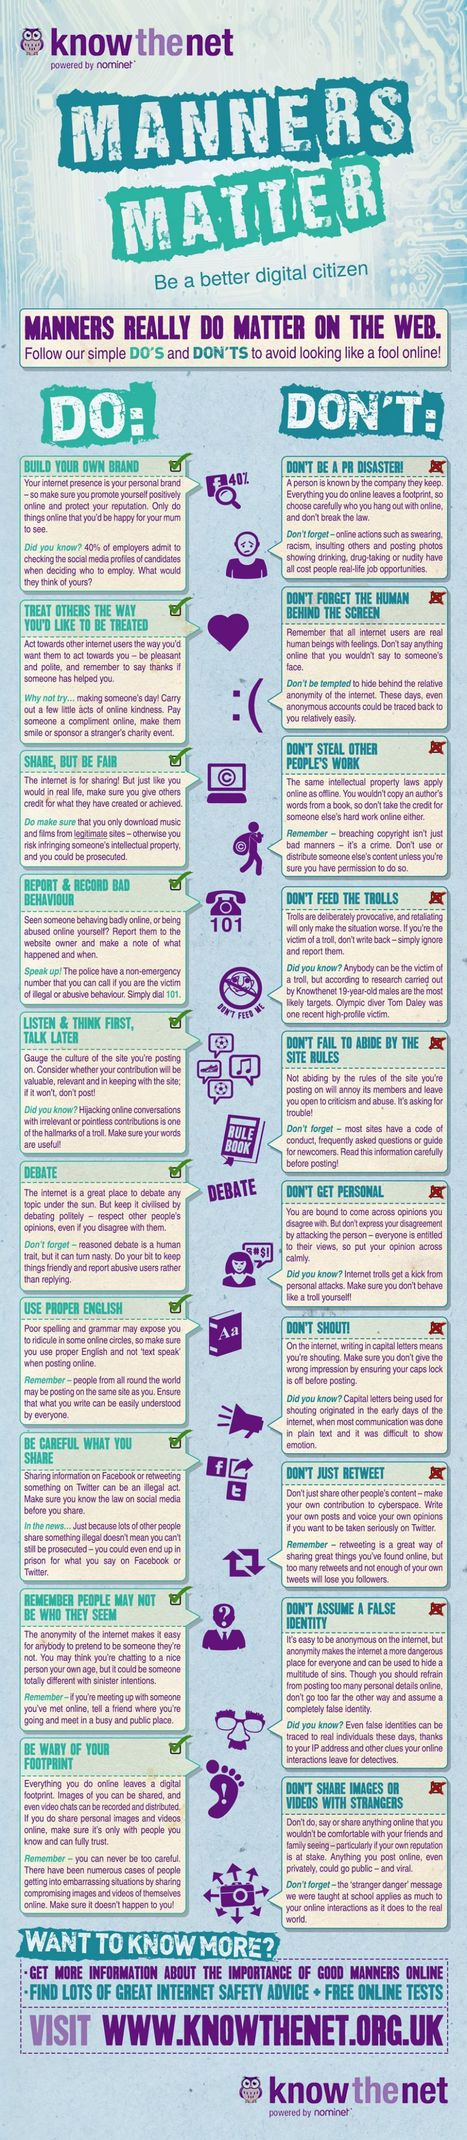 Manners Matter Netiquette [Infographic] | email | Scoop.it